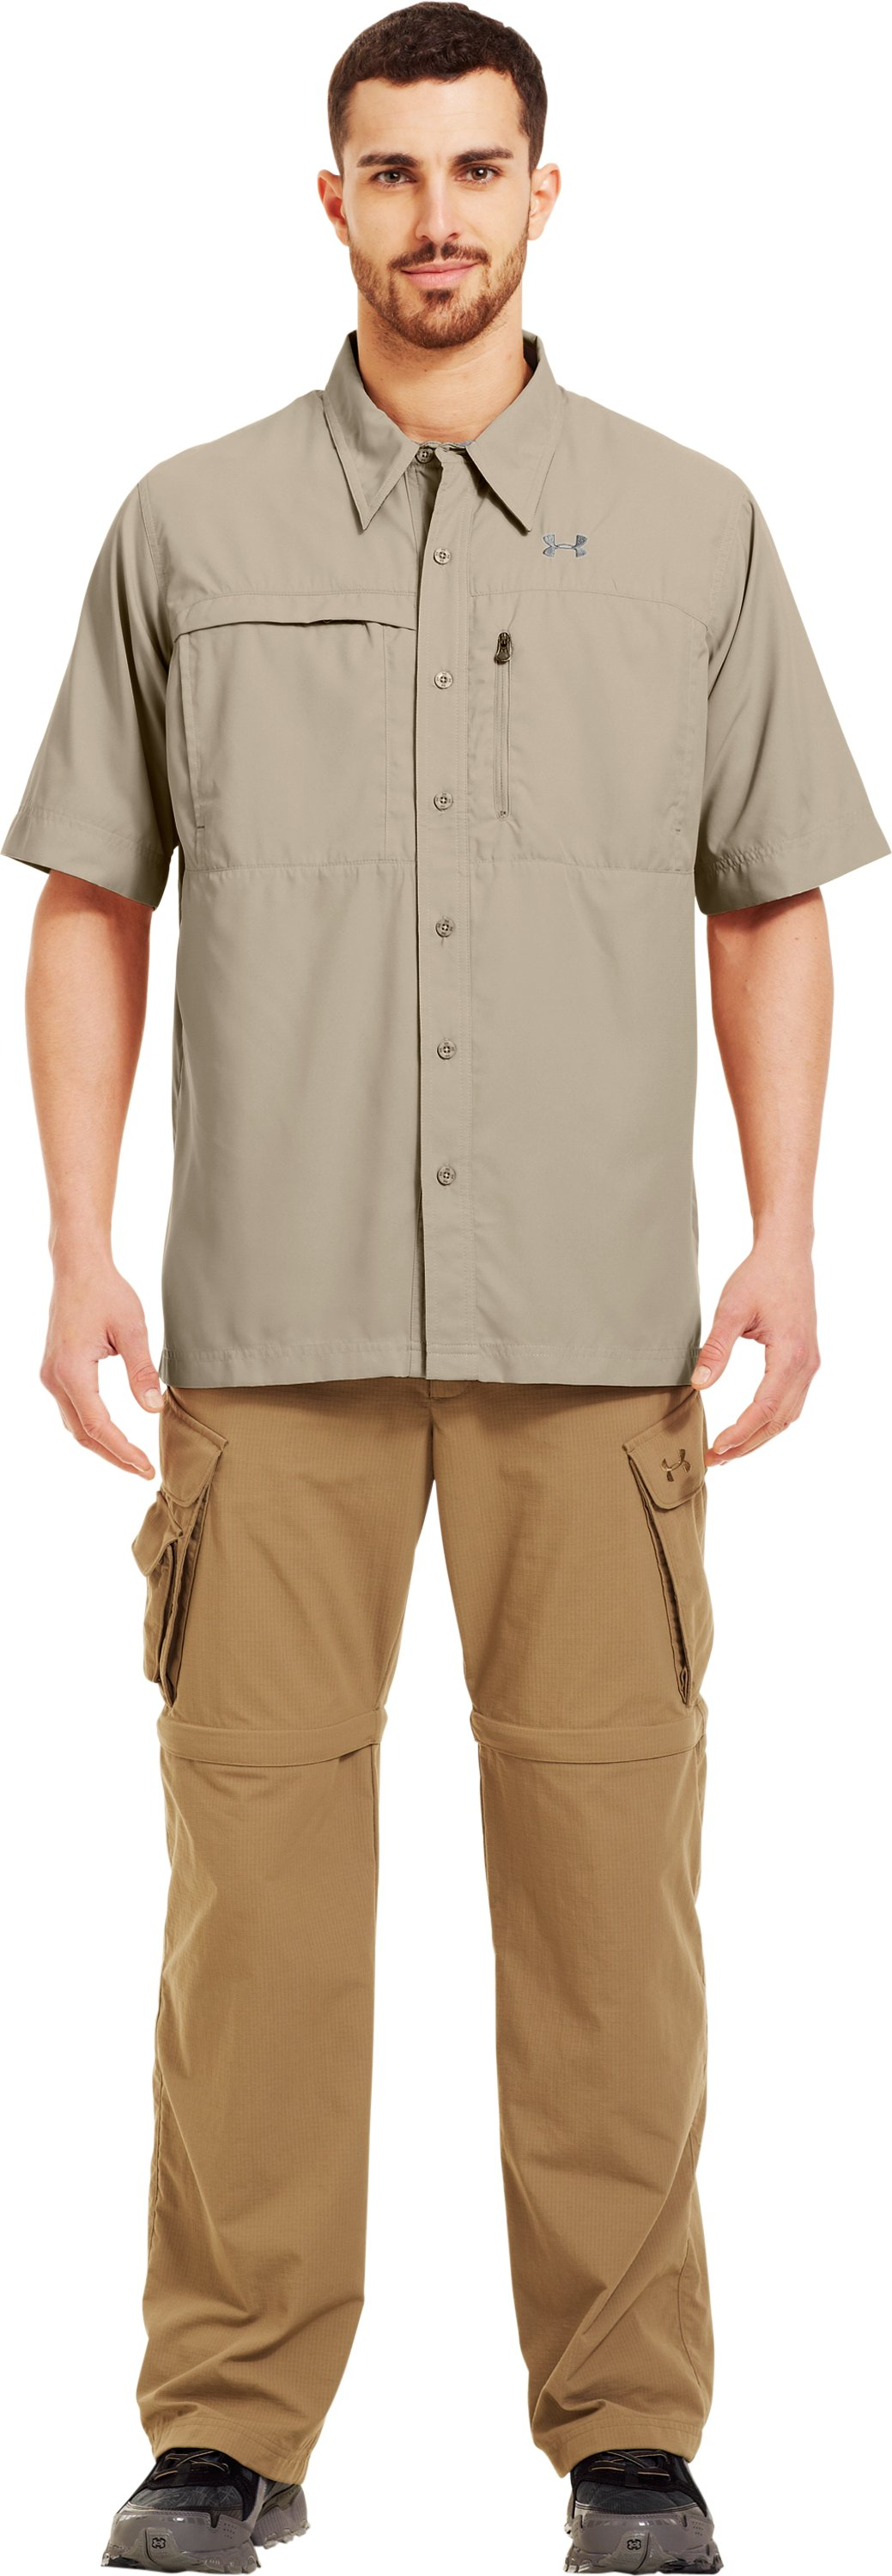 Men's Flats Guide Short Sleeve Shirt, Desert Sand, Front